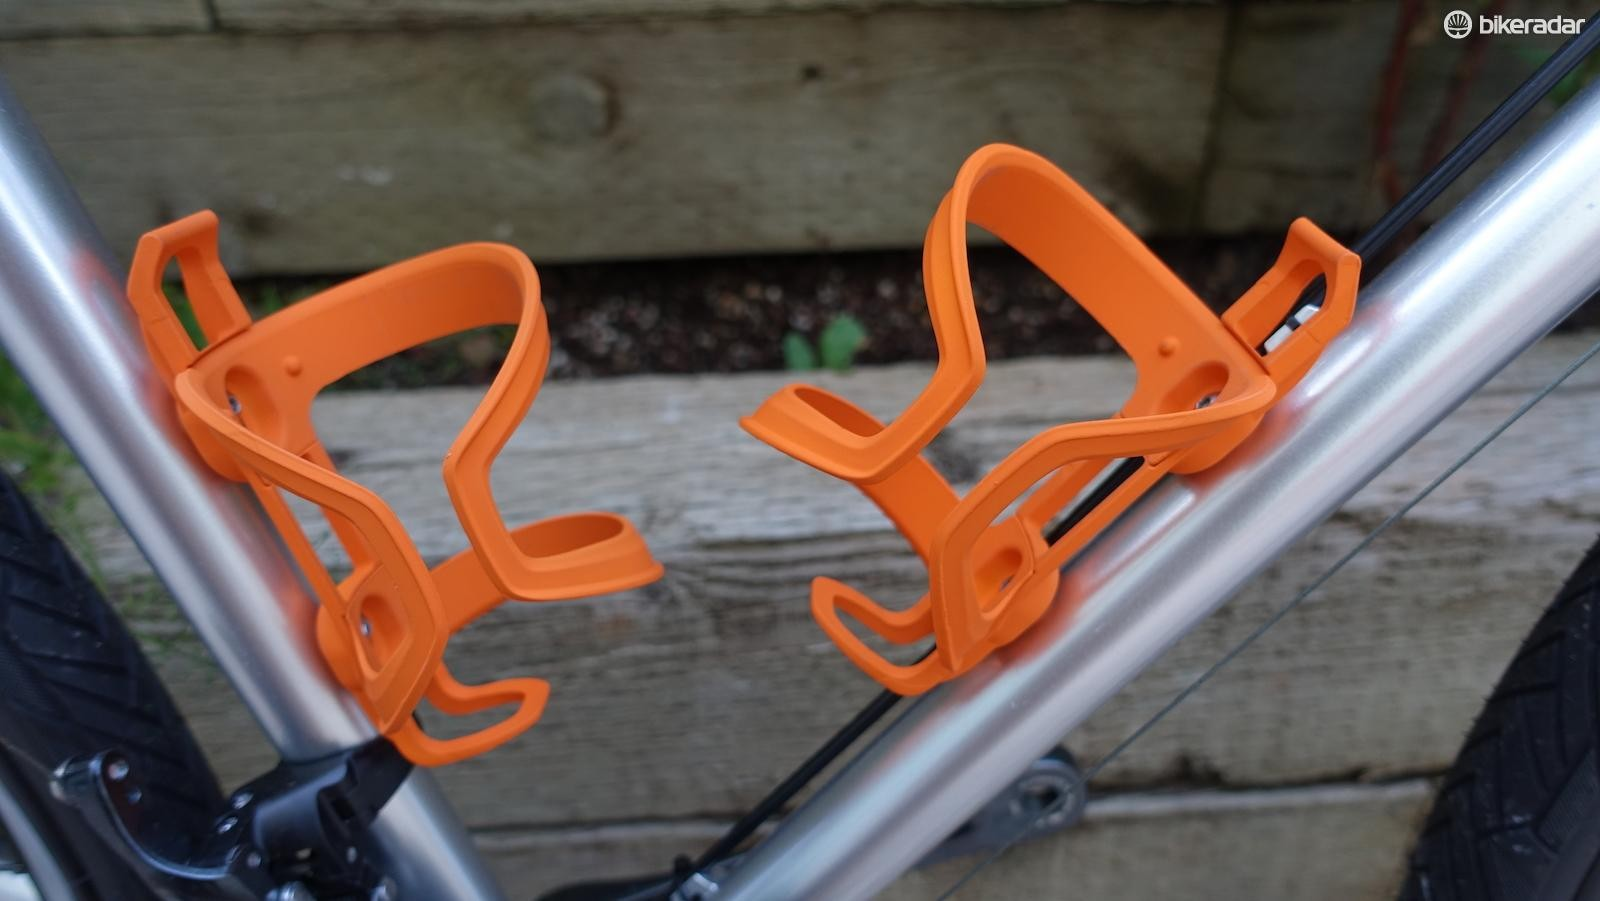 Blackburn's Wayside Side Entry cages are great for any bike, but especially helpful on small bikes or mountain bikes with small front triangles